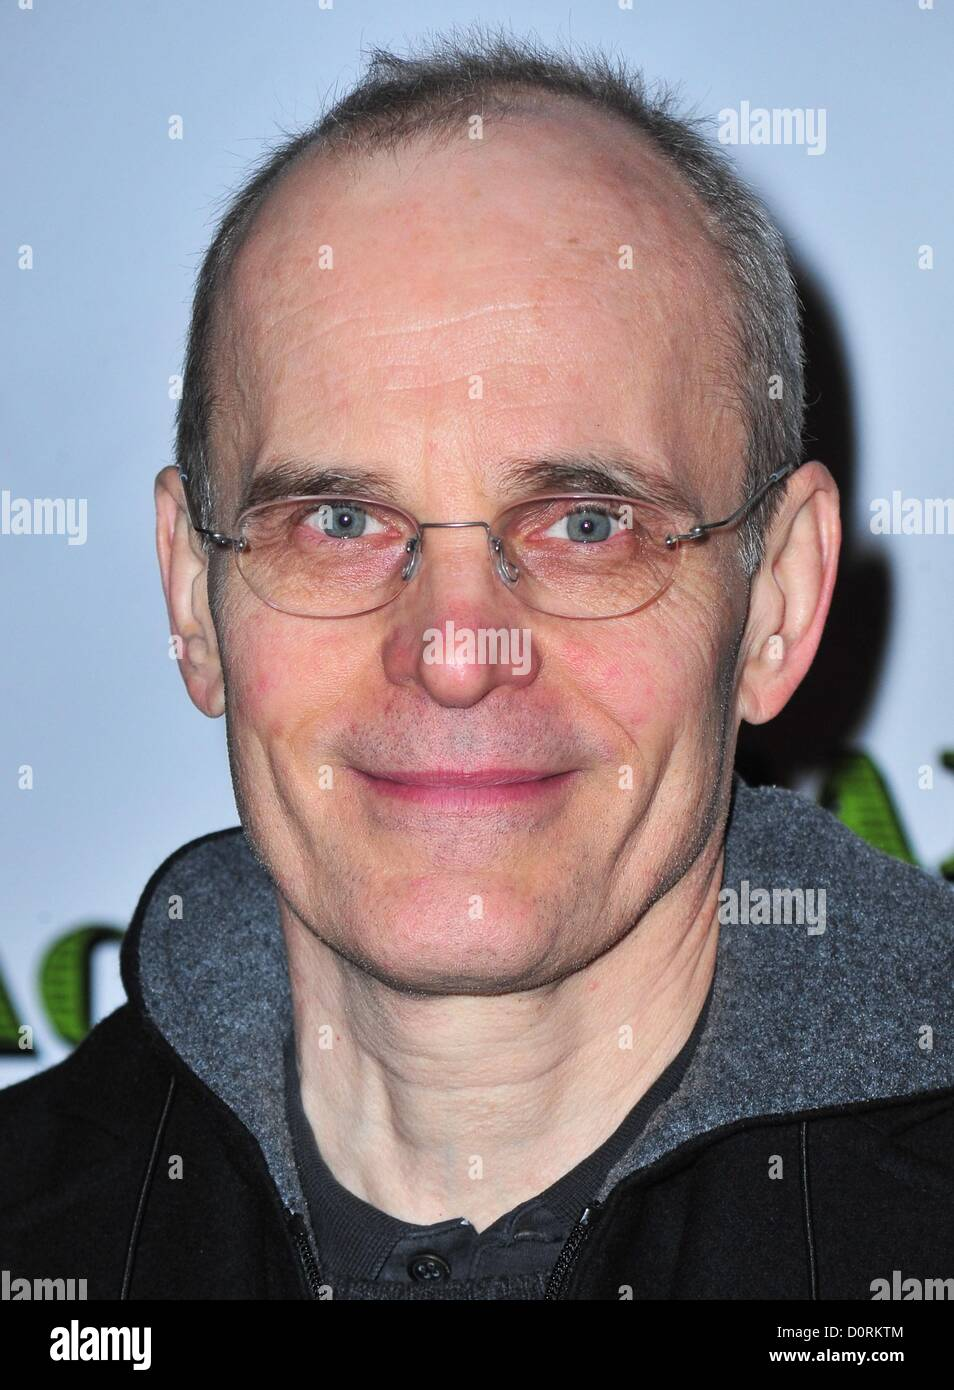 željko ivanek wifezeljko ivanek true blood, zeljko ivanek wikipedia, zeljko ivanek, желько иванек, željko ivanek illness, željko ivanek height, zeljko ivanek spouse, željko ivanek wife, zeljko ivanek partner, željko ivanek imdb, zeljko ivanek illness, zeljko ivanek pronunciation, željko ivanek house of cards, zeljko ivanek net worth, zeljko ivanek married, zeljko ivanek wiki, zeljko ivanek actor, zeljko ivanek greg pierce, željko ivanek suits, zeljko ivanek west wing